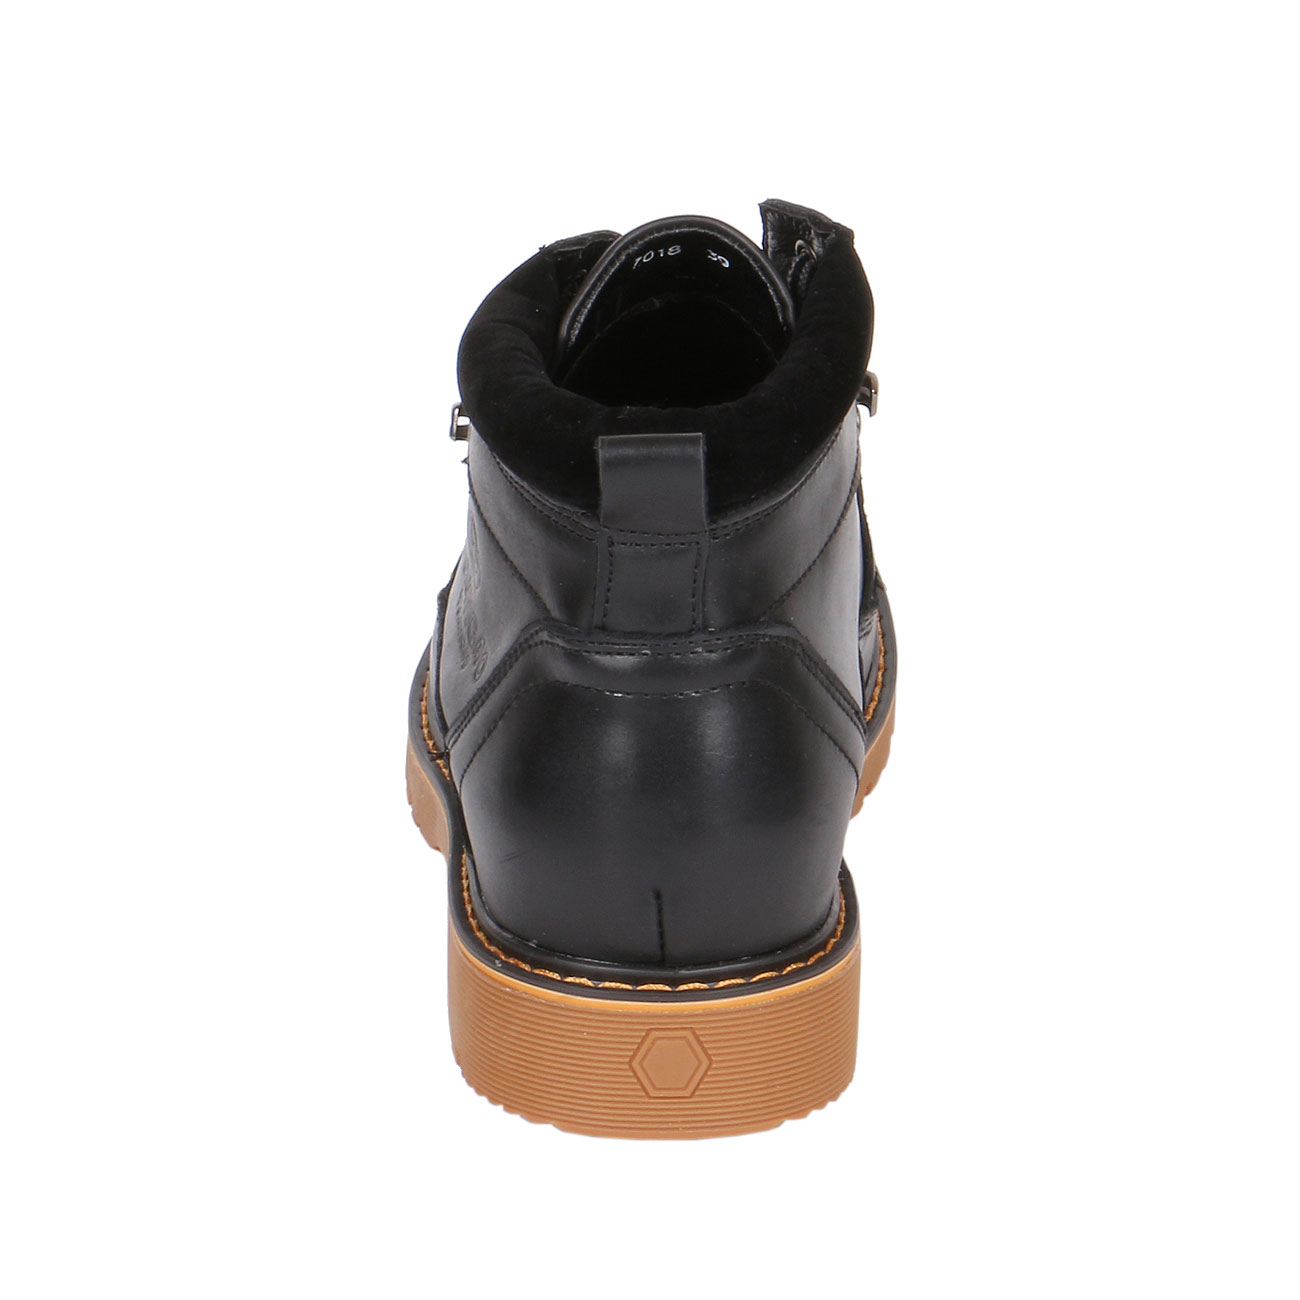 Men's Work Boots for Height-view3